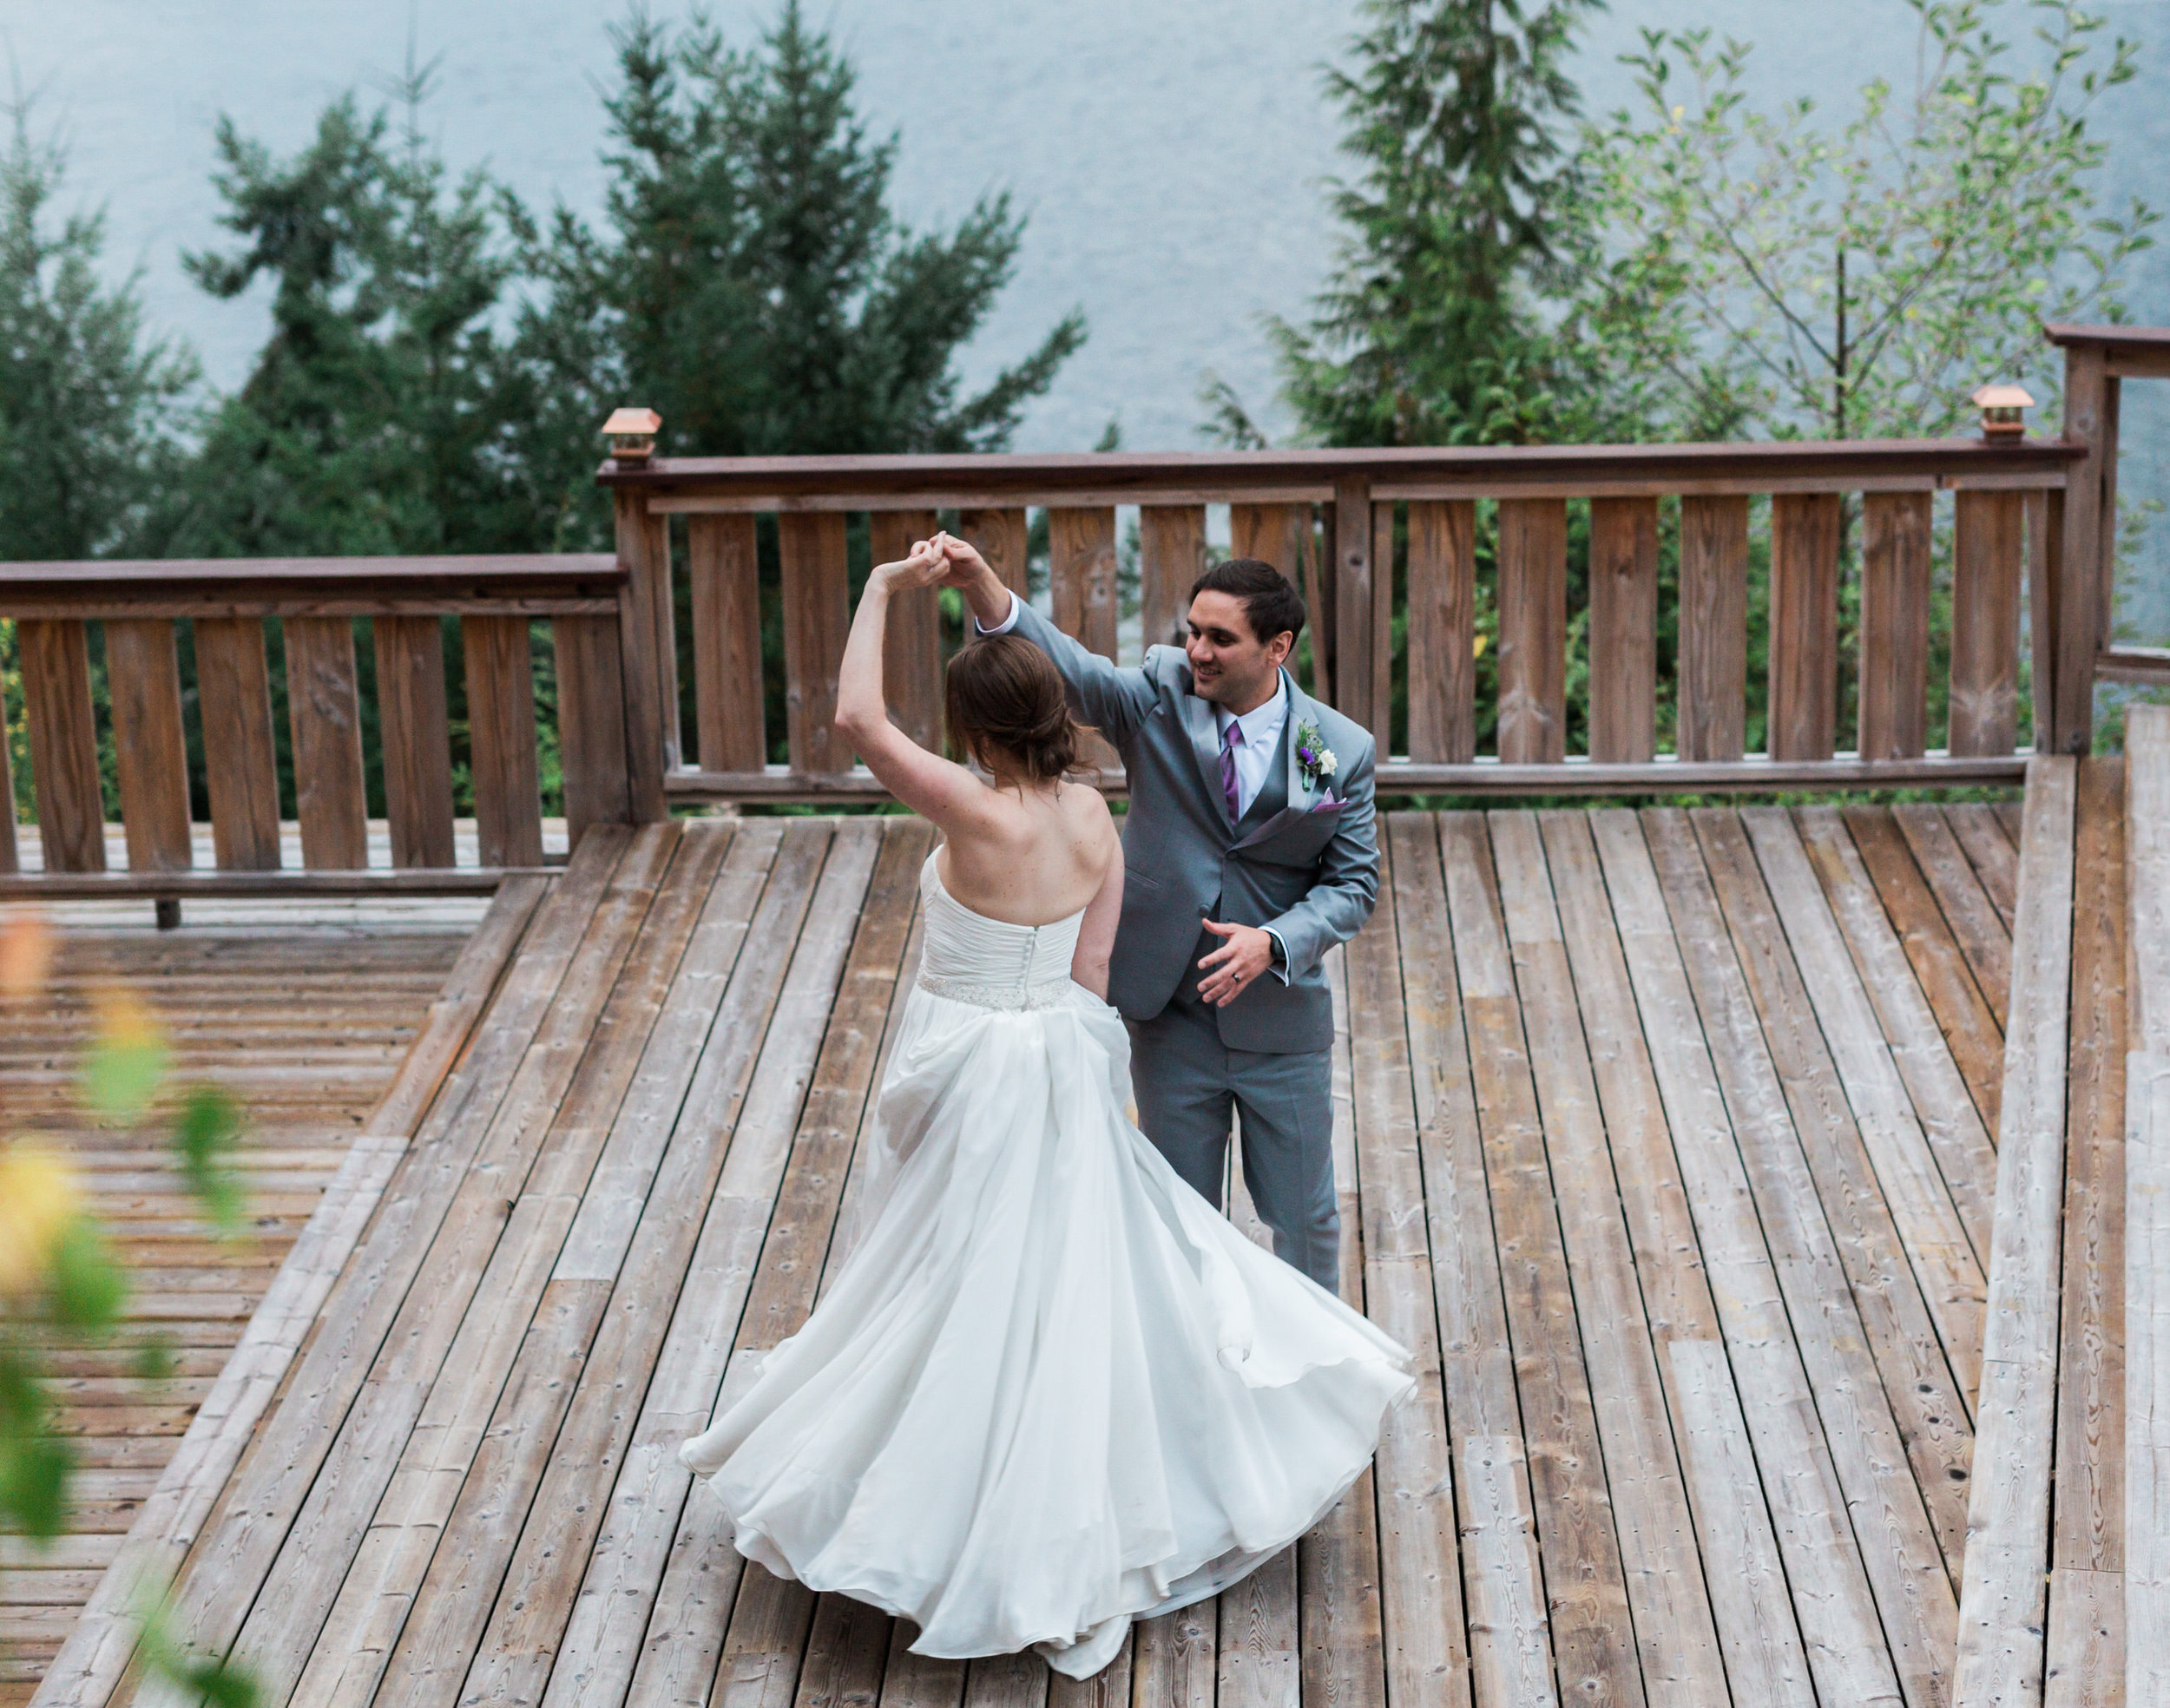 West Coast Wilderness Lodge Wedding Photos - Vancouver Wedding Photographer & Videographer - Sunshine Coast Wedding Photos - Sunshine Coast Wedding Photographer - Jennifer Picard Photography - IMG_7917.jpg